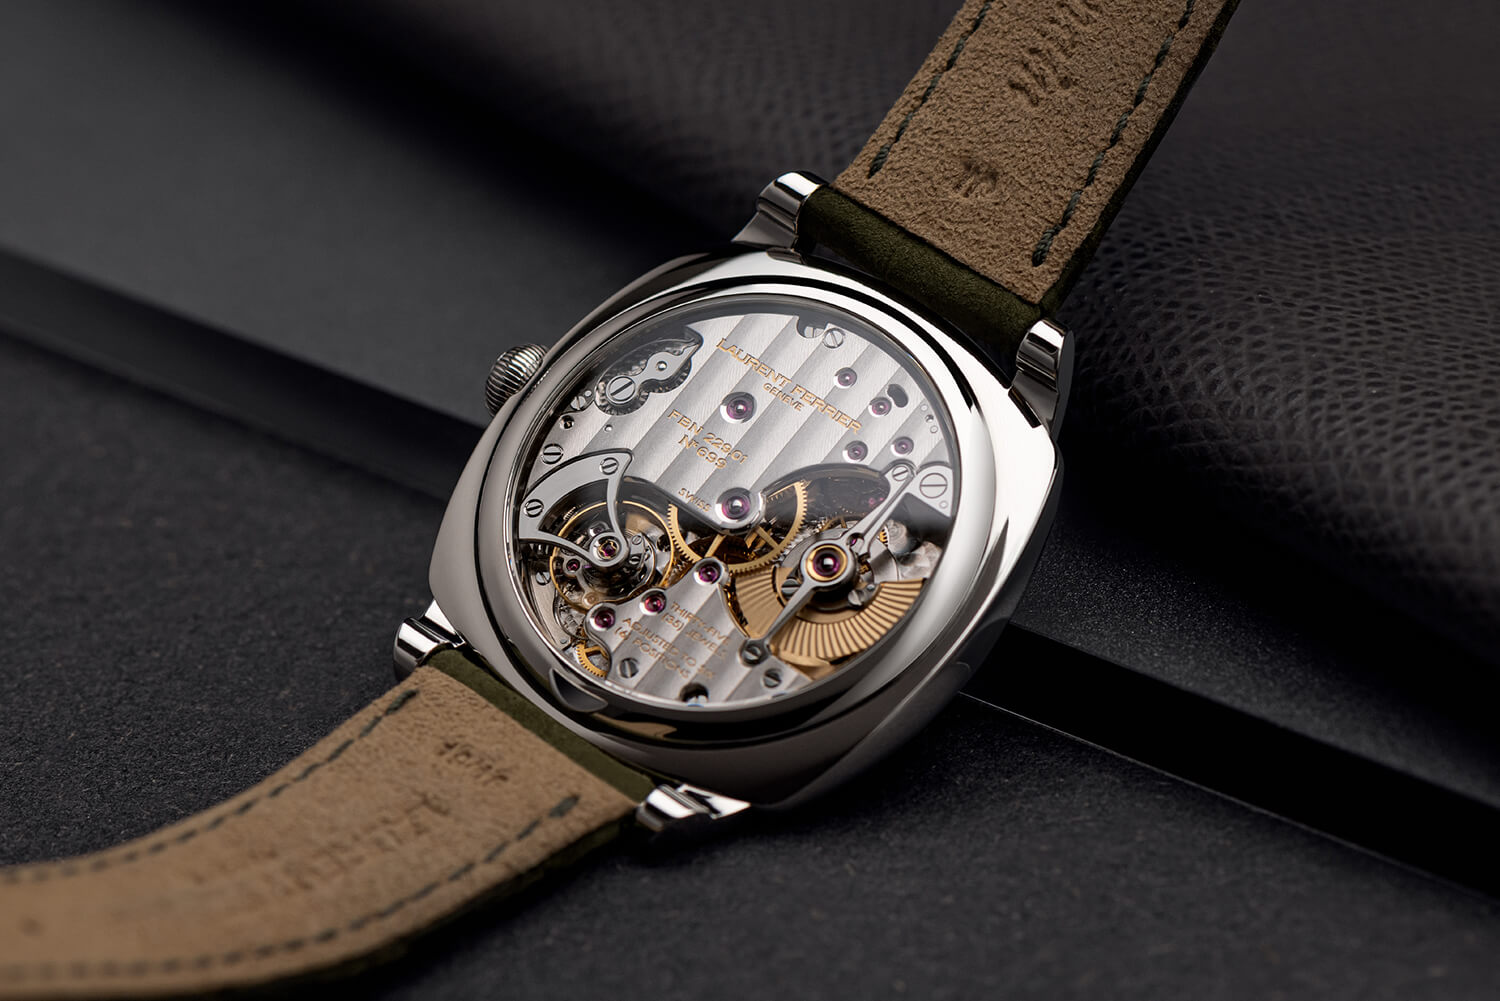 Stainless steel version of the watch resting on it's back showing a highly hand finished 229.01 micro-rotor movement through sapphire case-back.